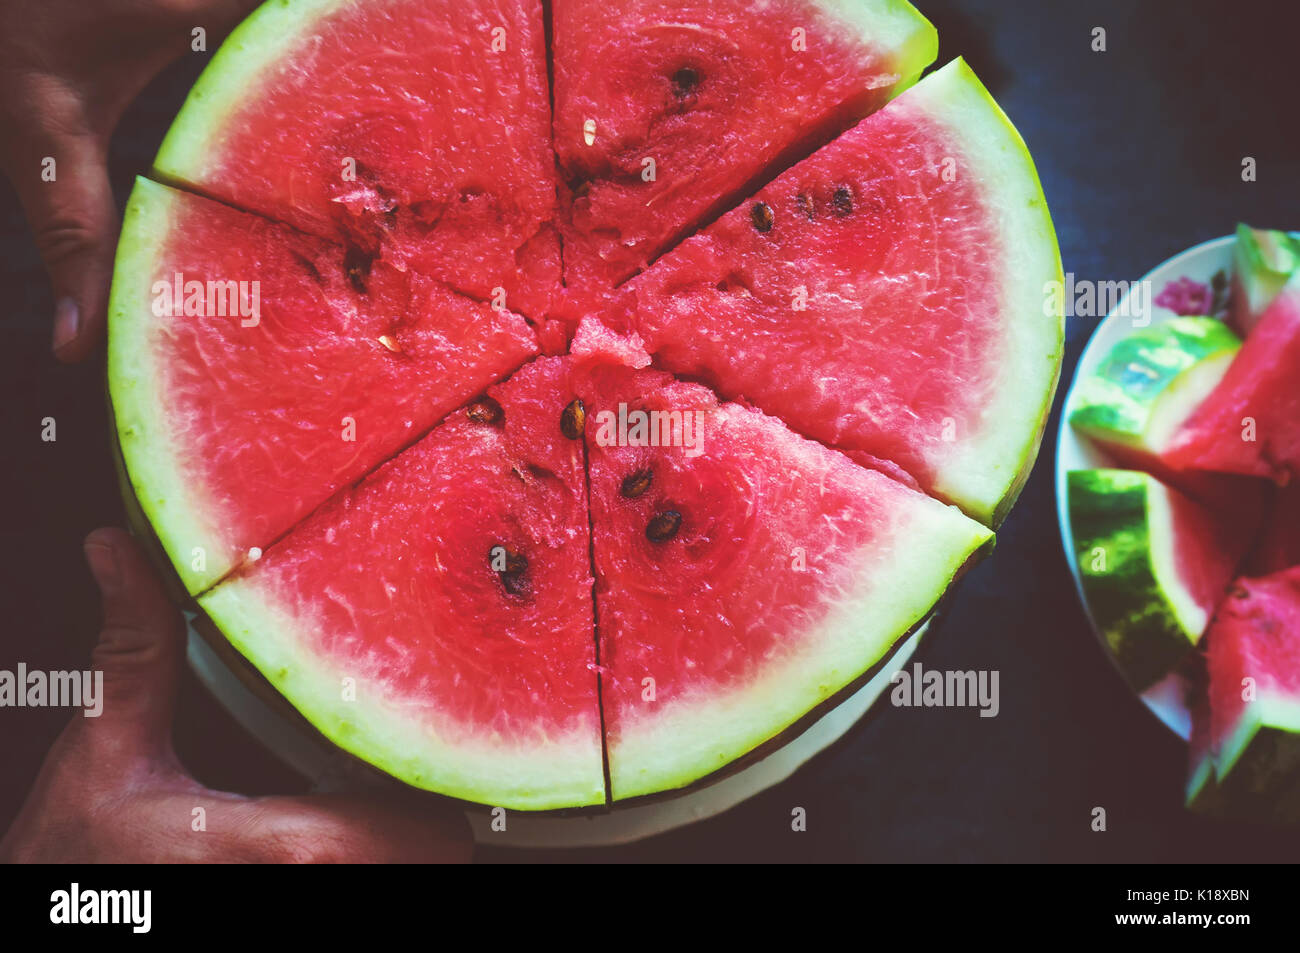 A man cuts a ripe red watermelon. Slices of watermelon closeup - Stock Image